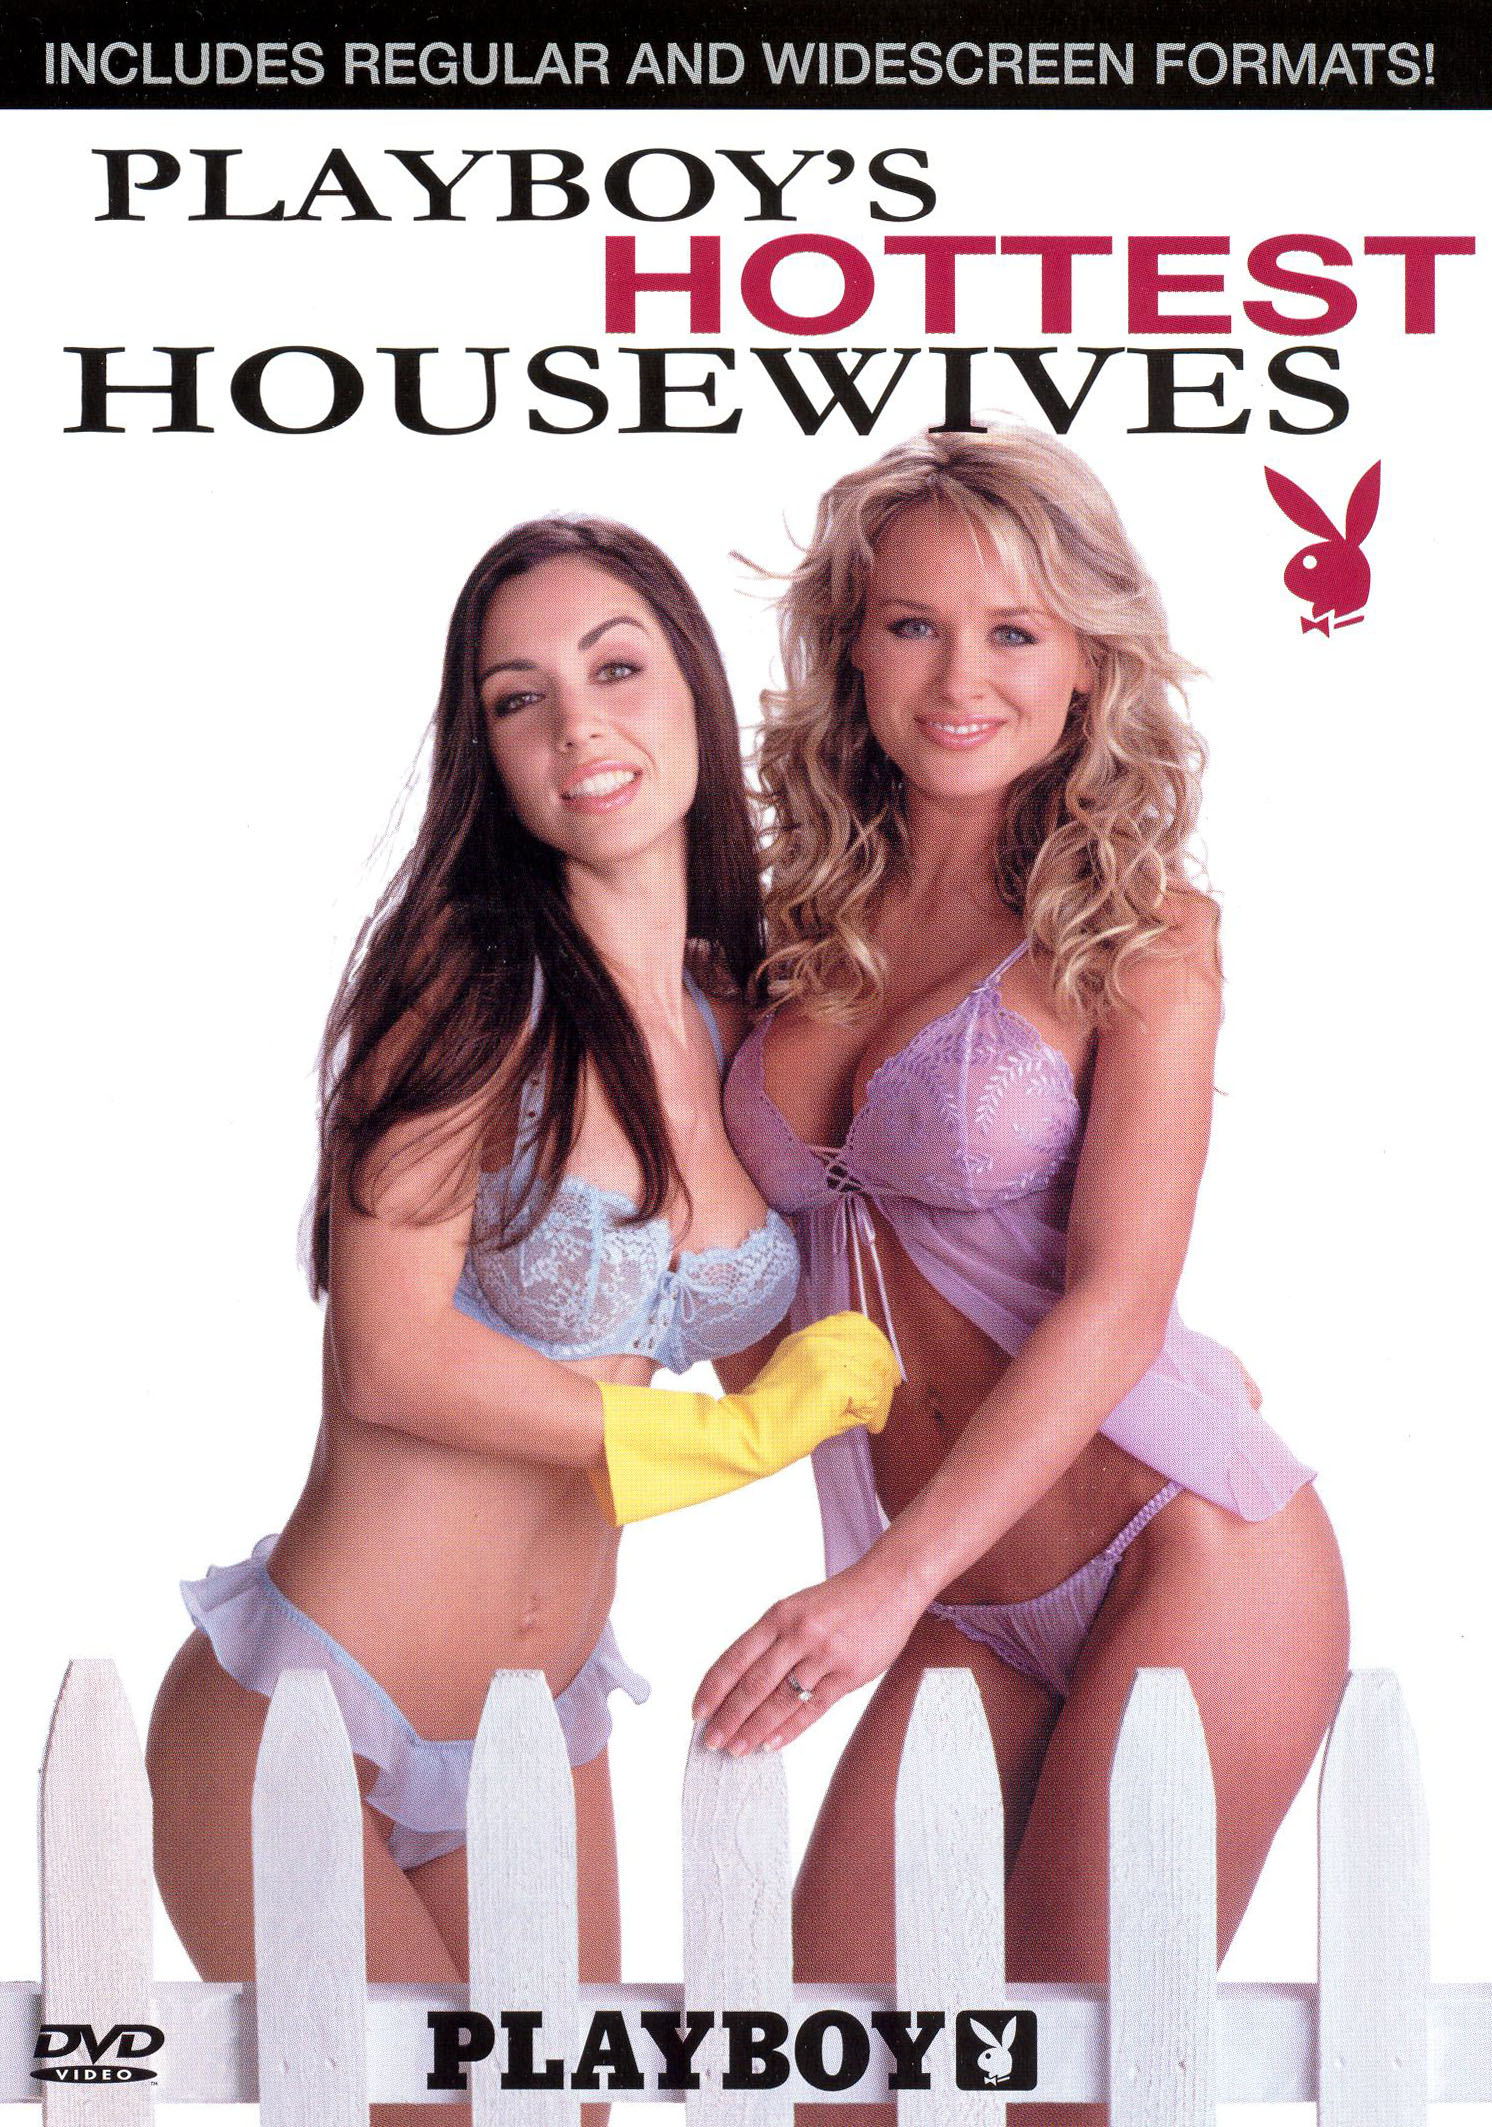 Playboy: Playboy's Hottest Housewives